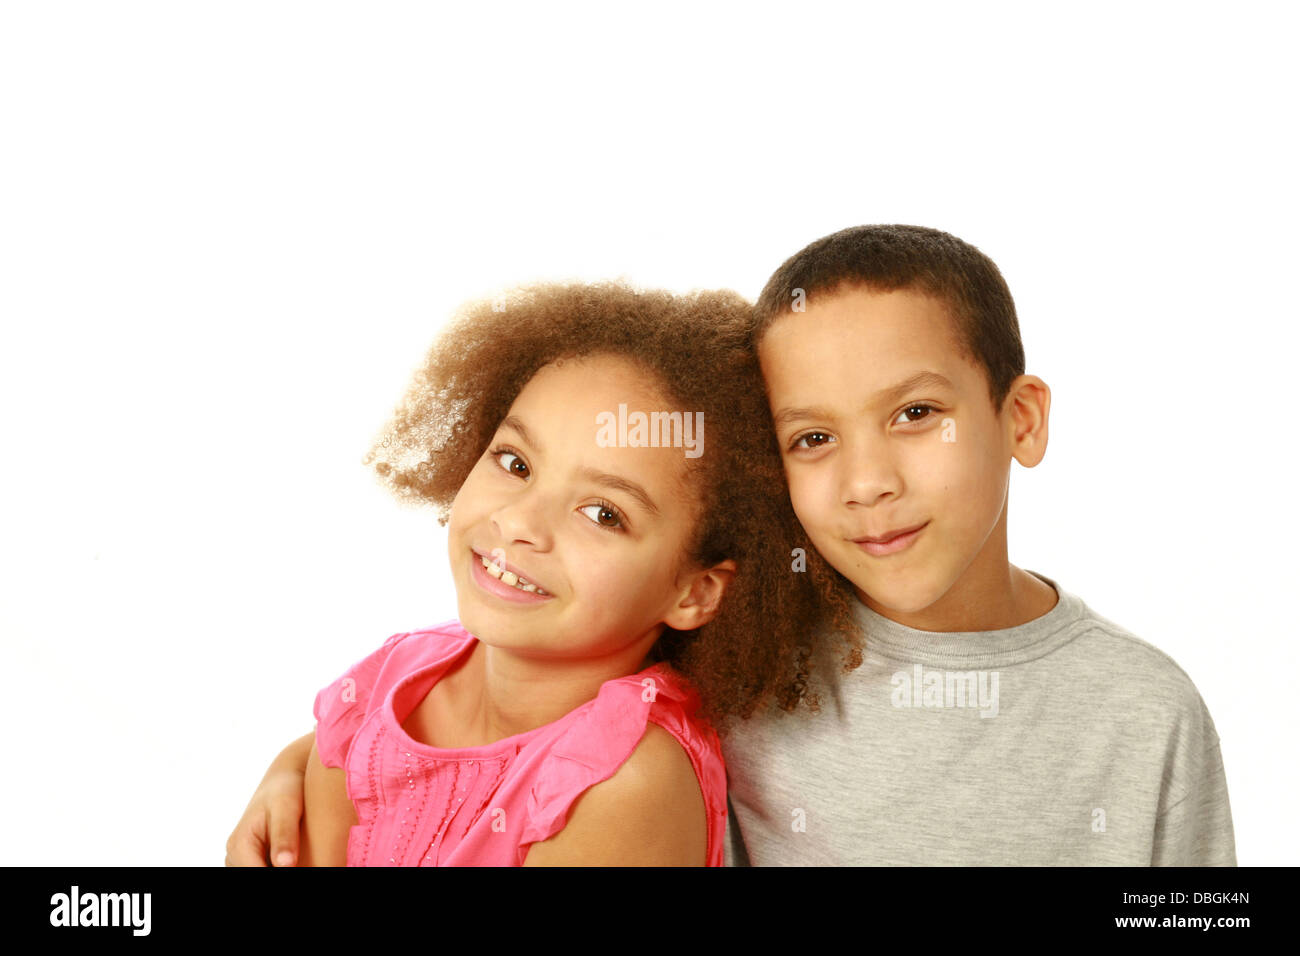 smiling black children hugging with copy space - Stock Image